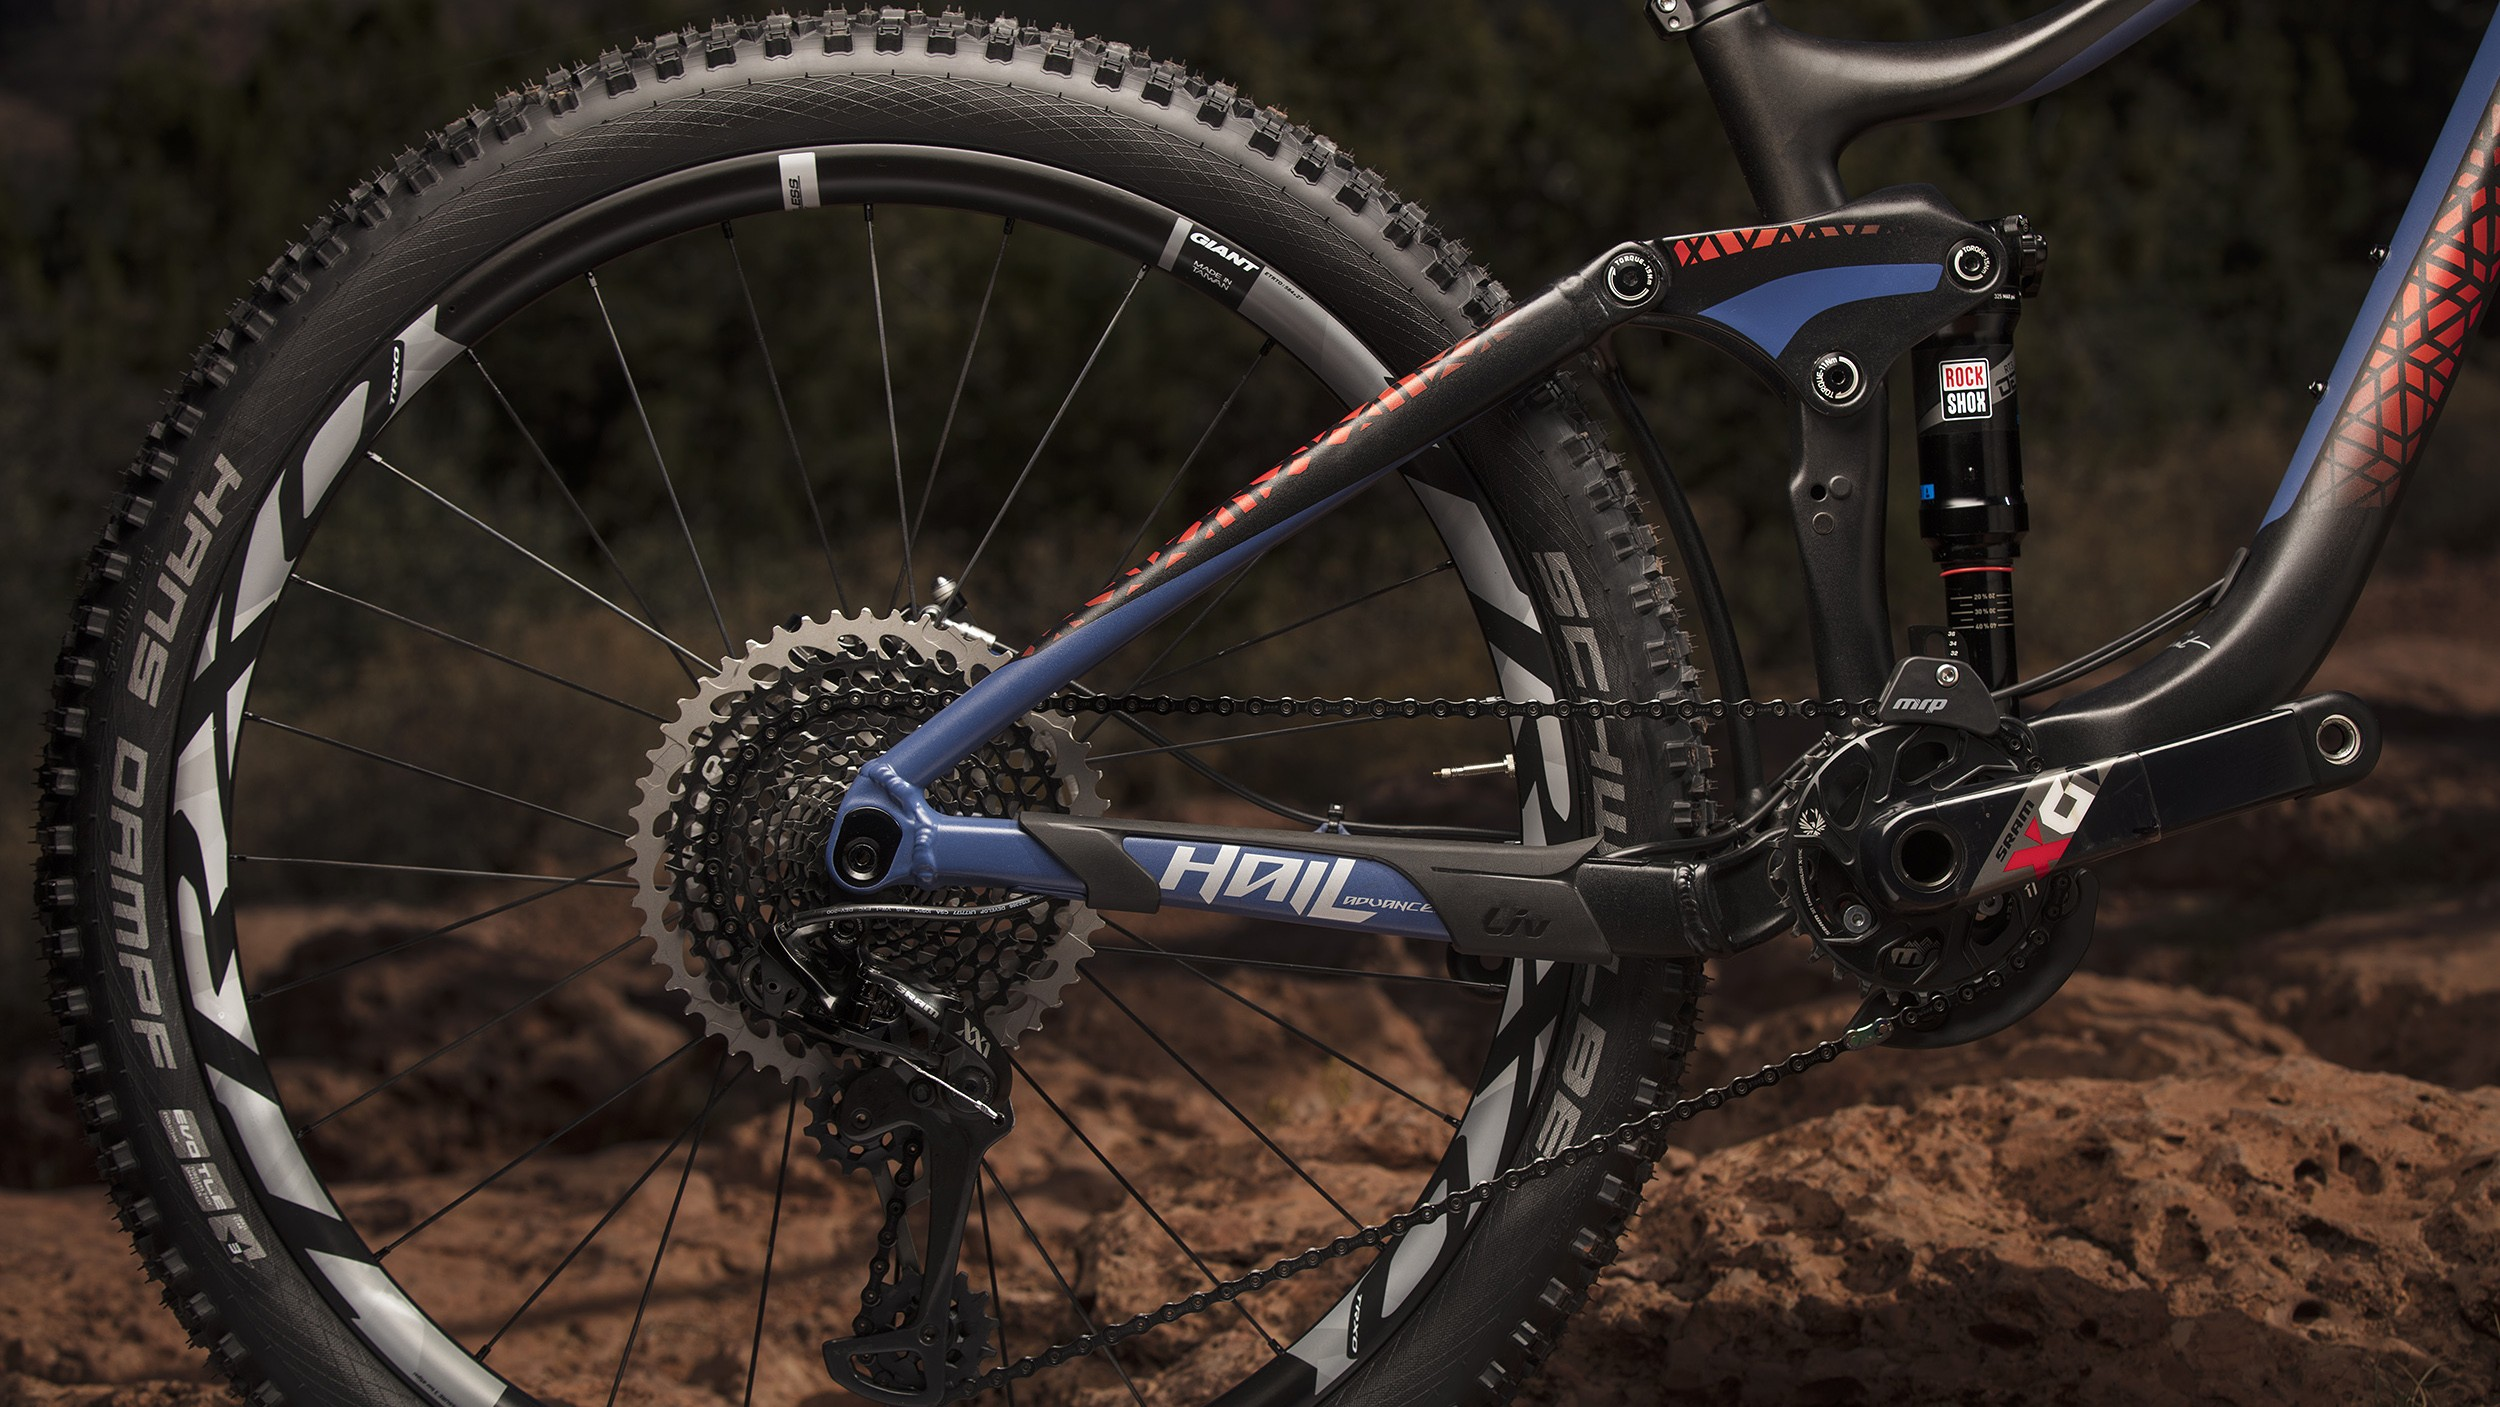 Both the Liv Hail and Pique feature the Advanced Forged Composite Link on all models, aluminium as well as carbon